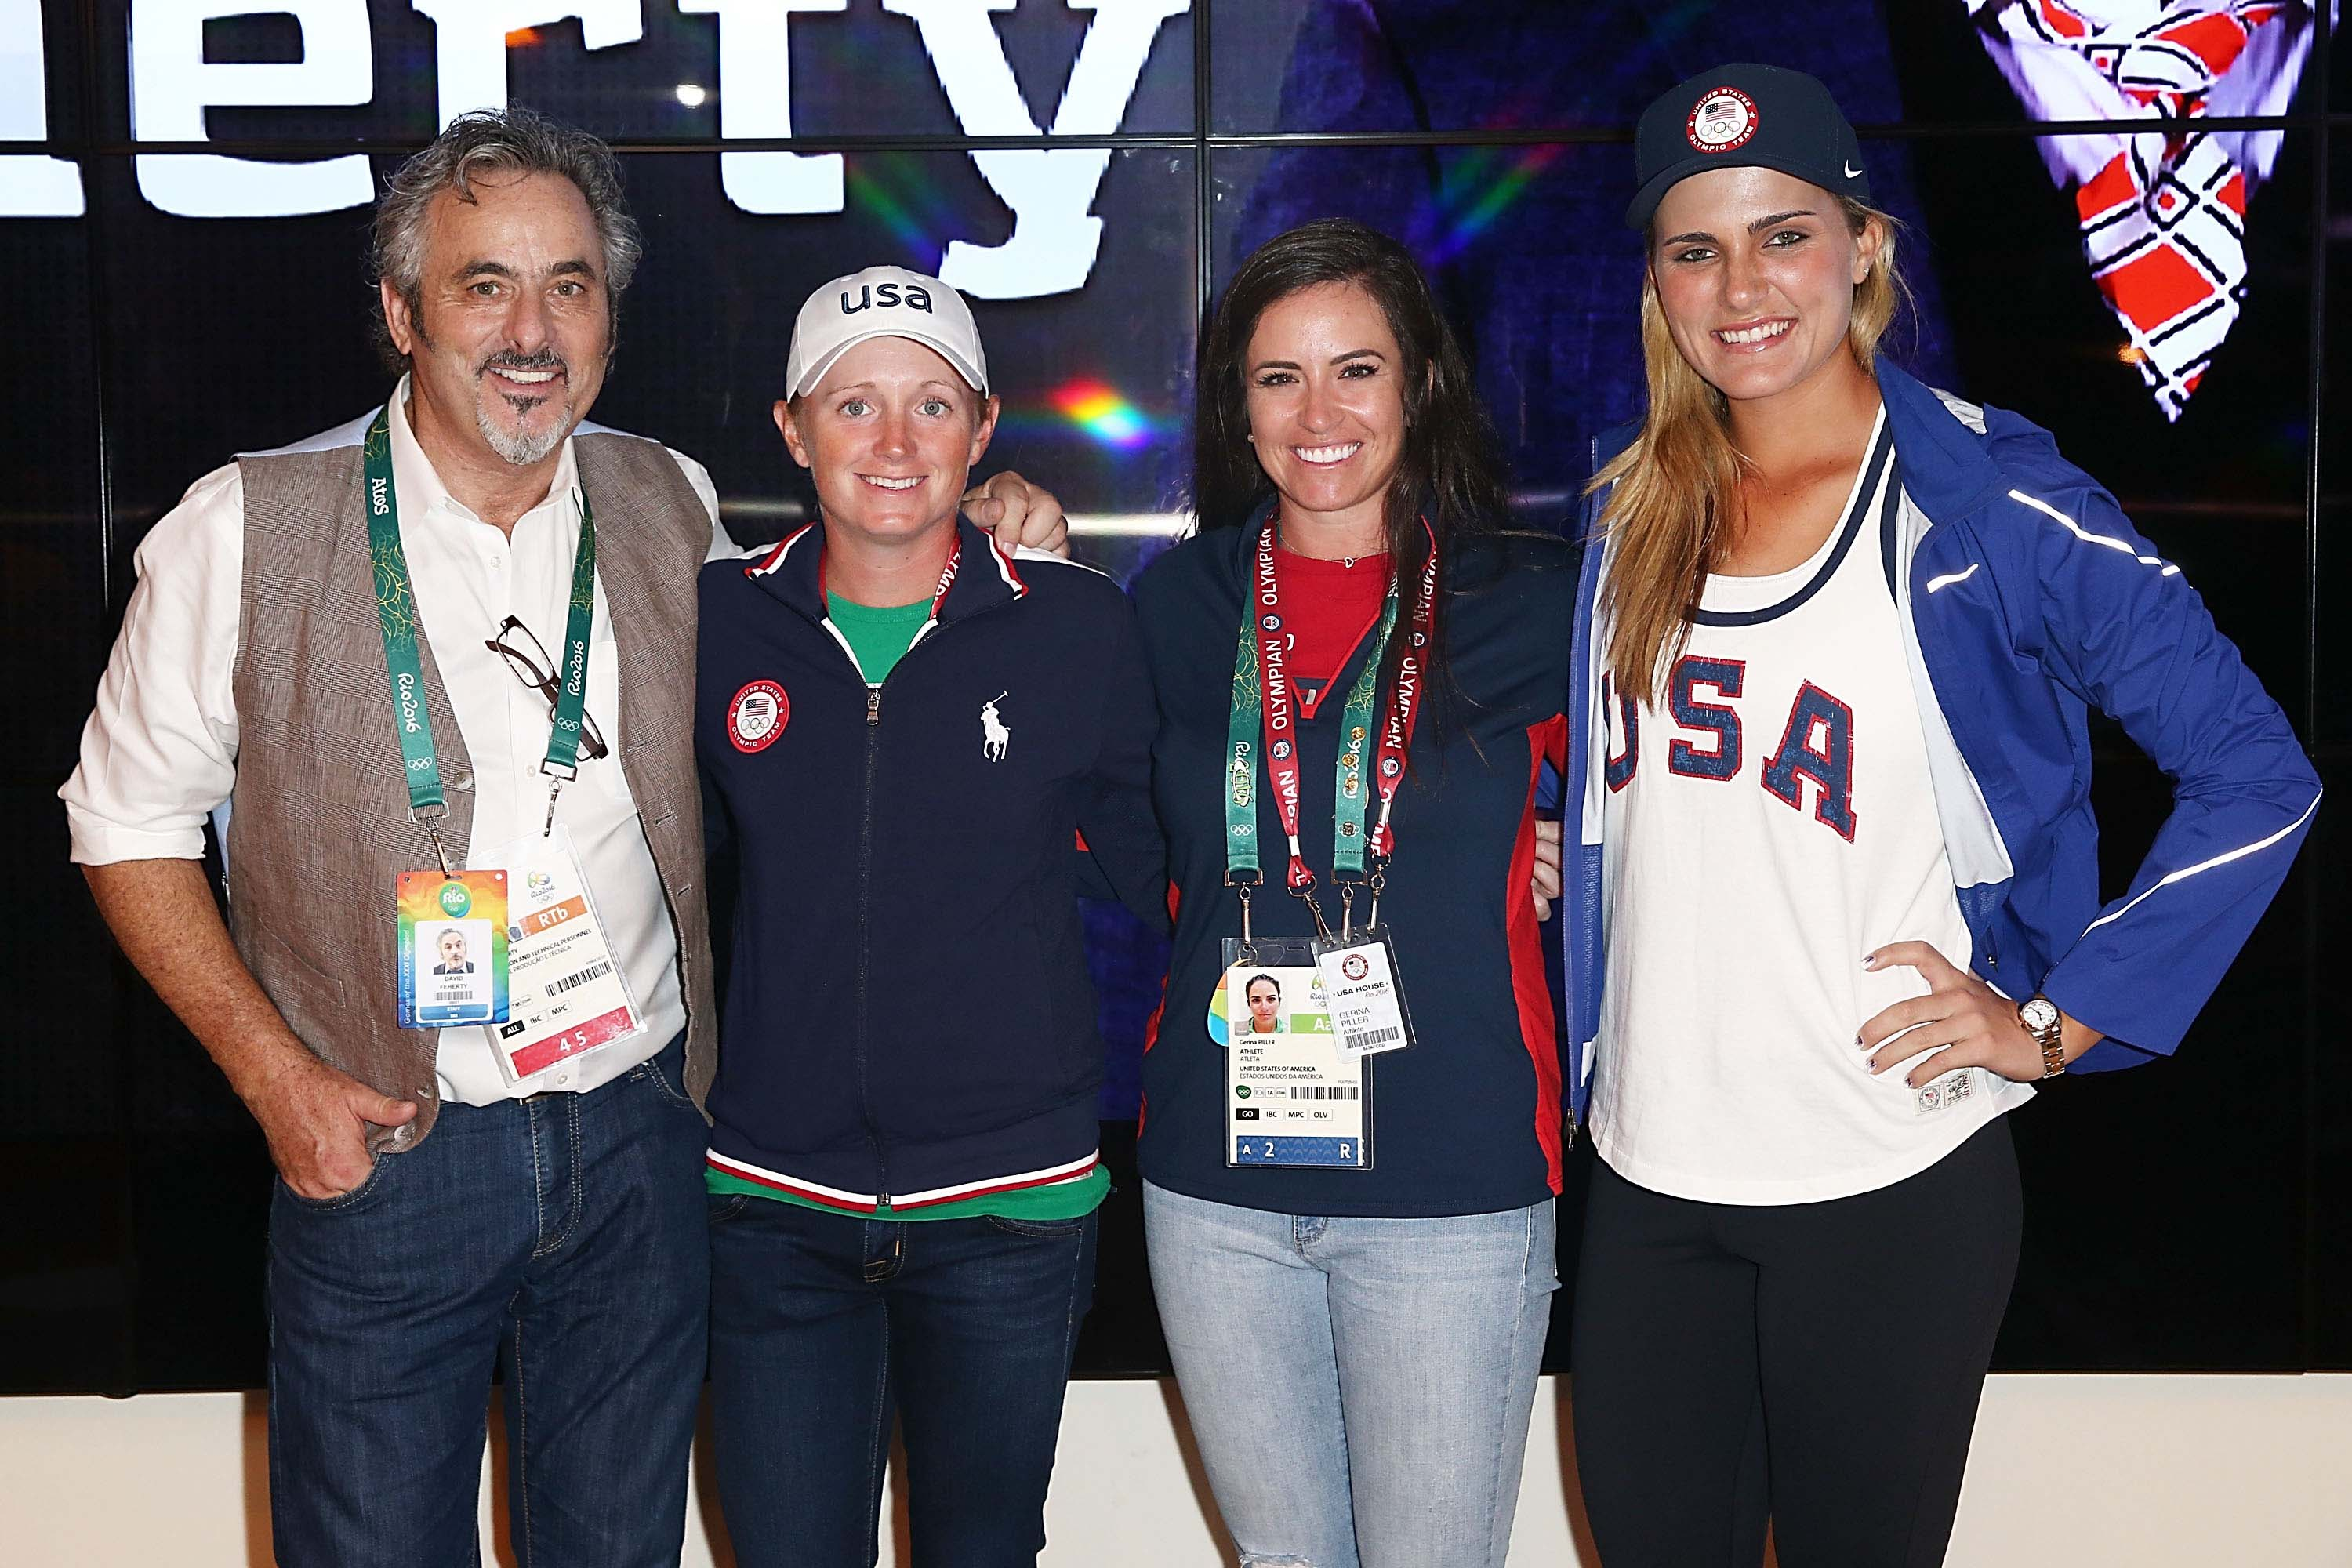 David Feherty, Stacy Lewis, Gerina Piller and Lexi Thompson